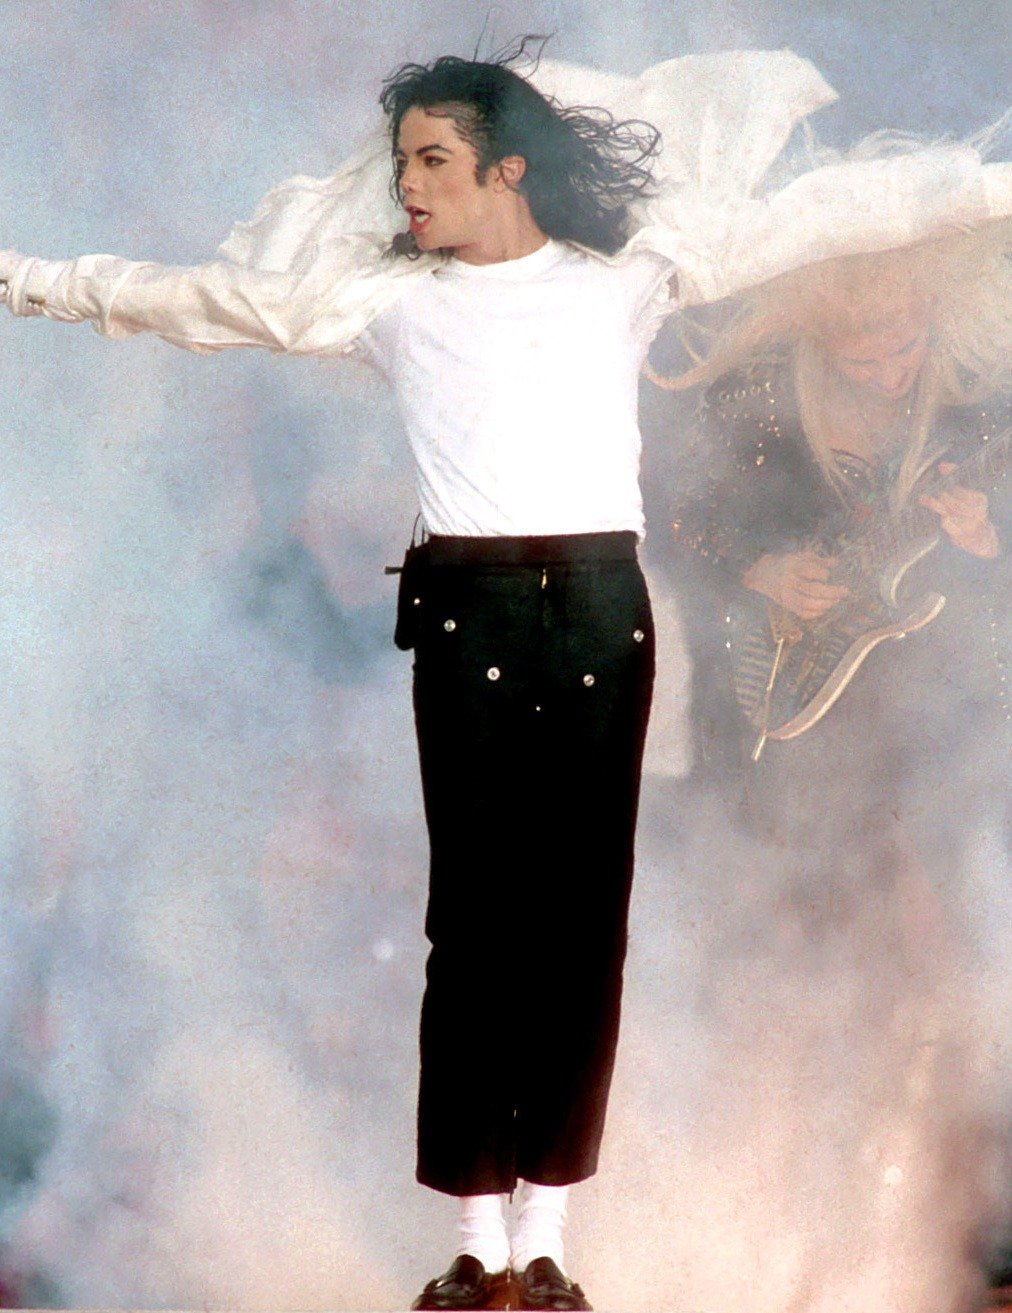 michael jackson1 20 Things You Didn't Know About Michael Jackson